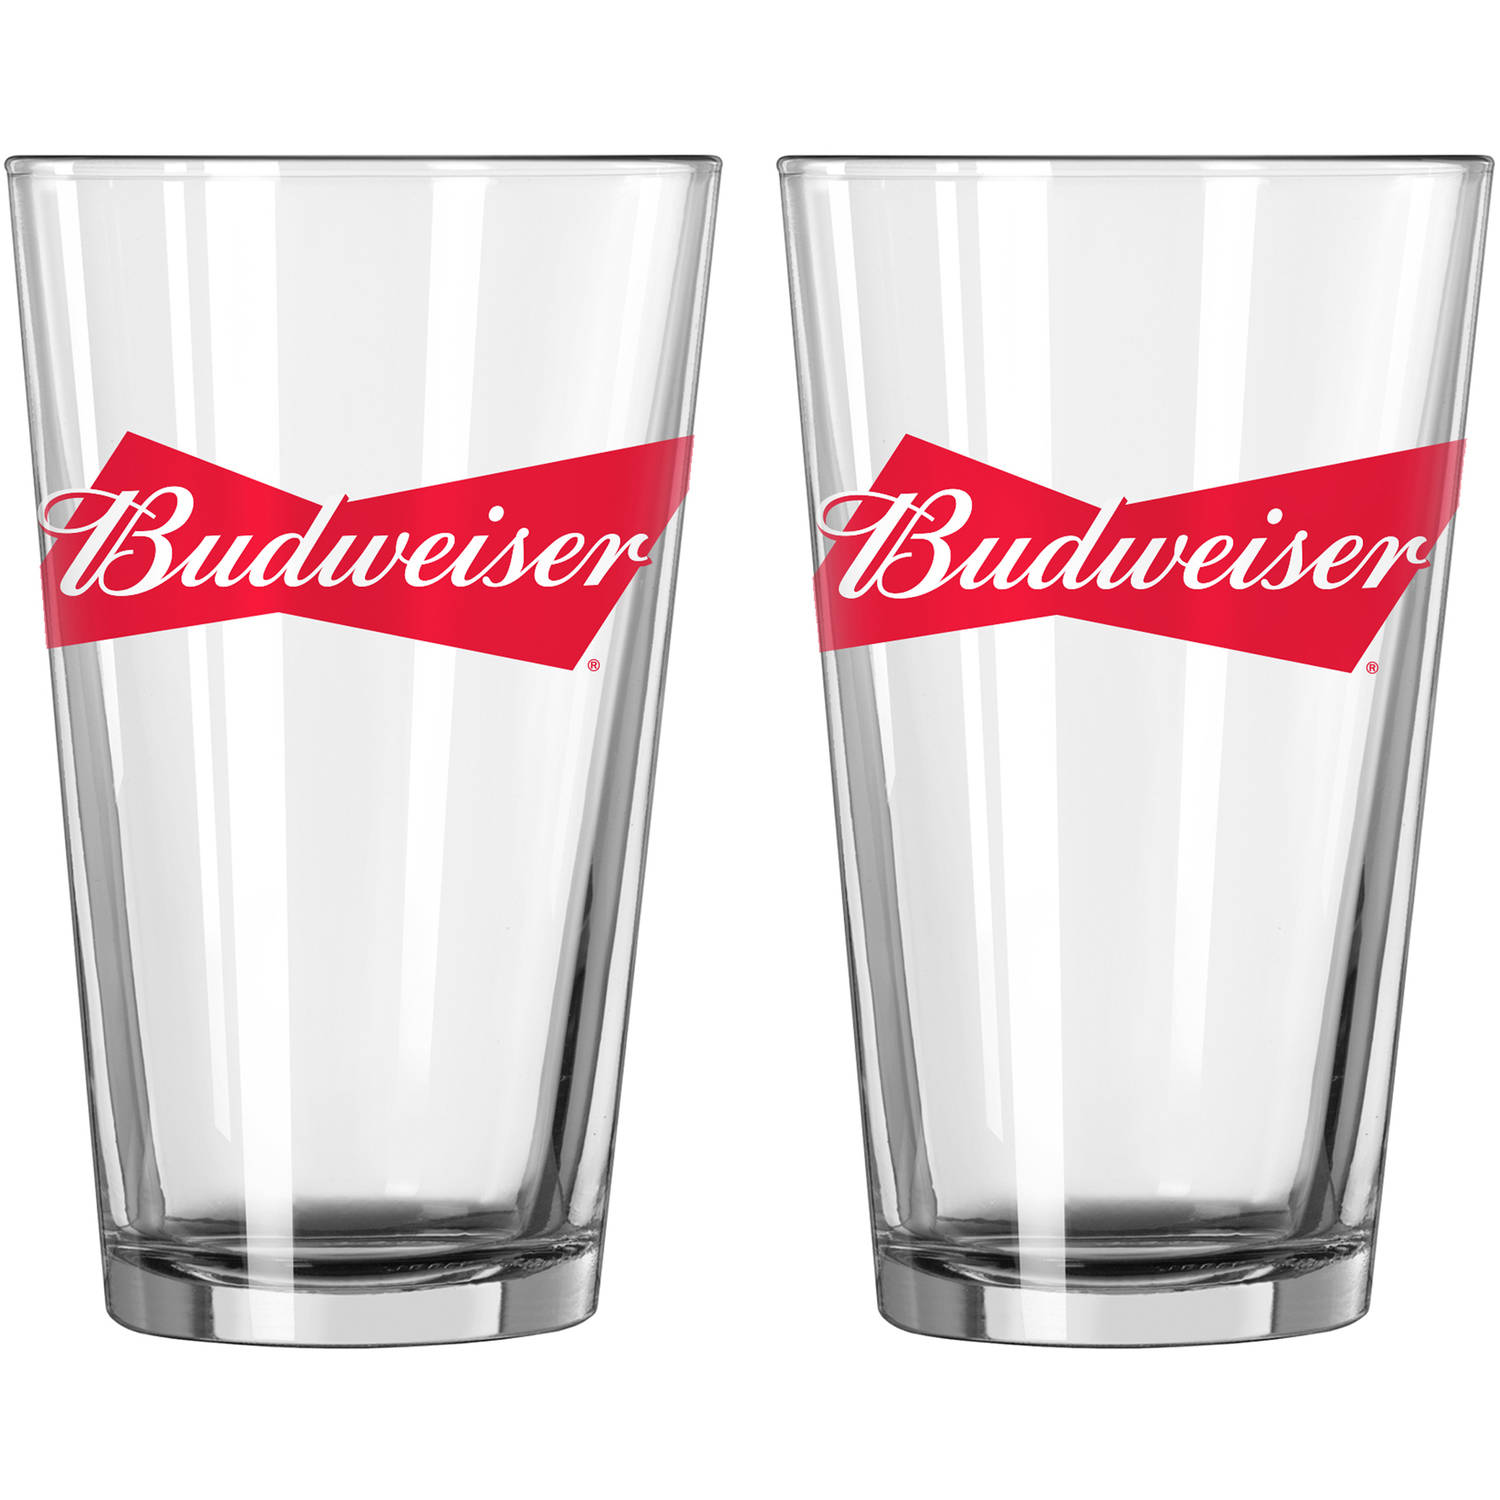 Budweiser Pint Glasses, 2pk by Boelter Brands